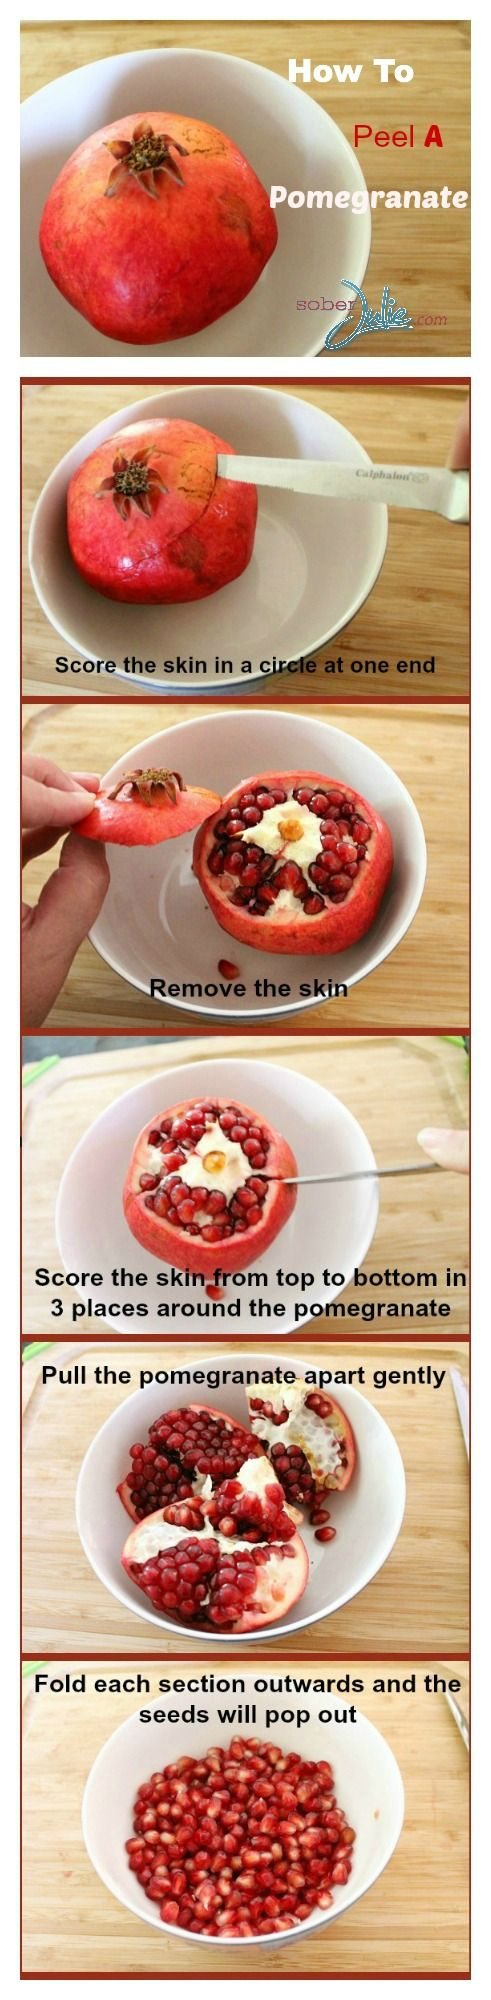 How To Peel A Pomegranate - @SoberJulie.com #whatisapomegranate